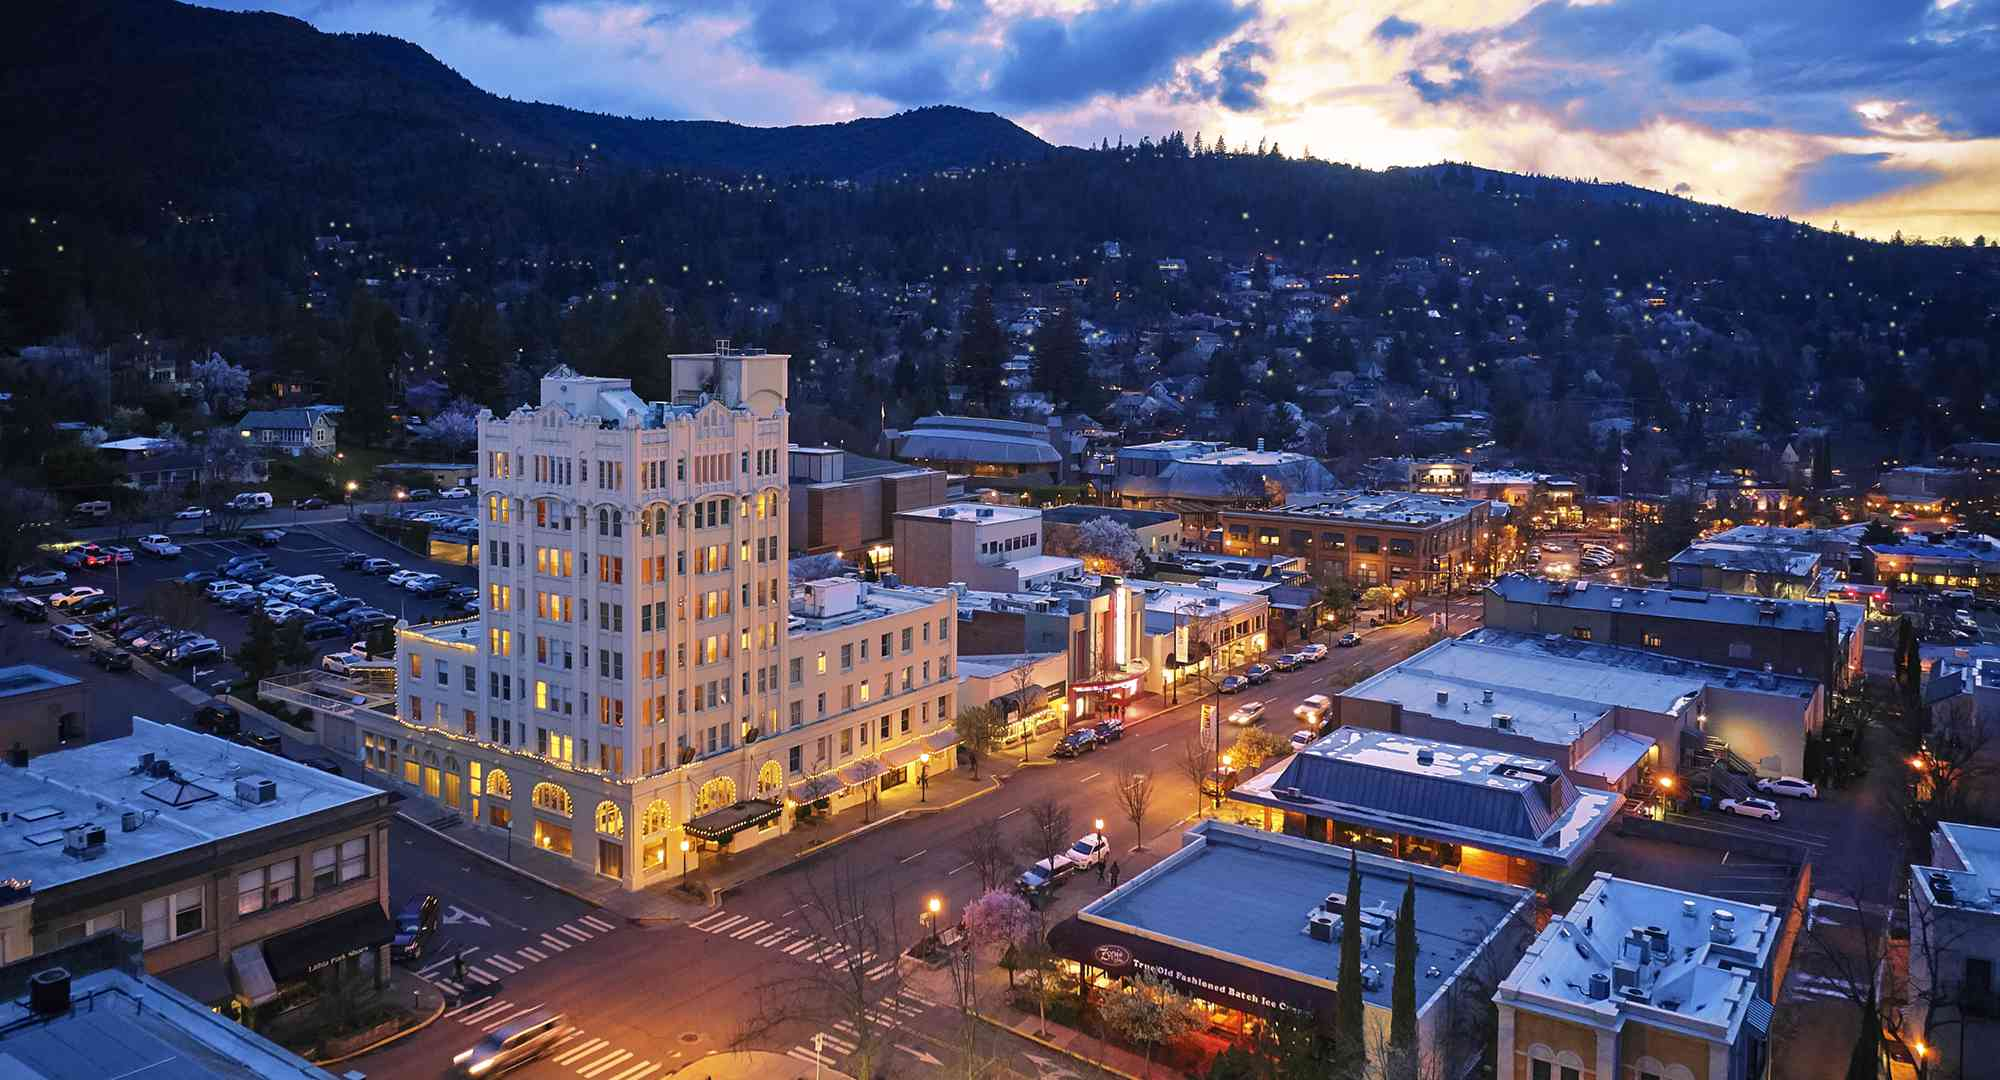 View of downtown Ashland at sunset with mountains